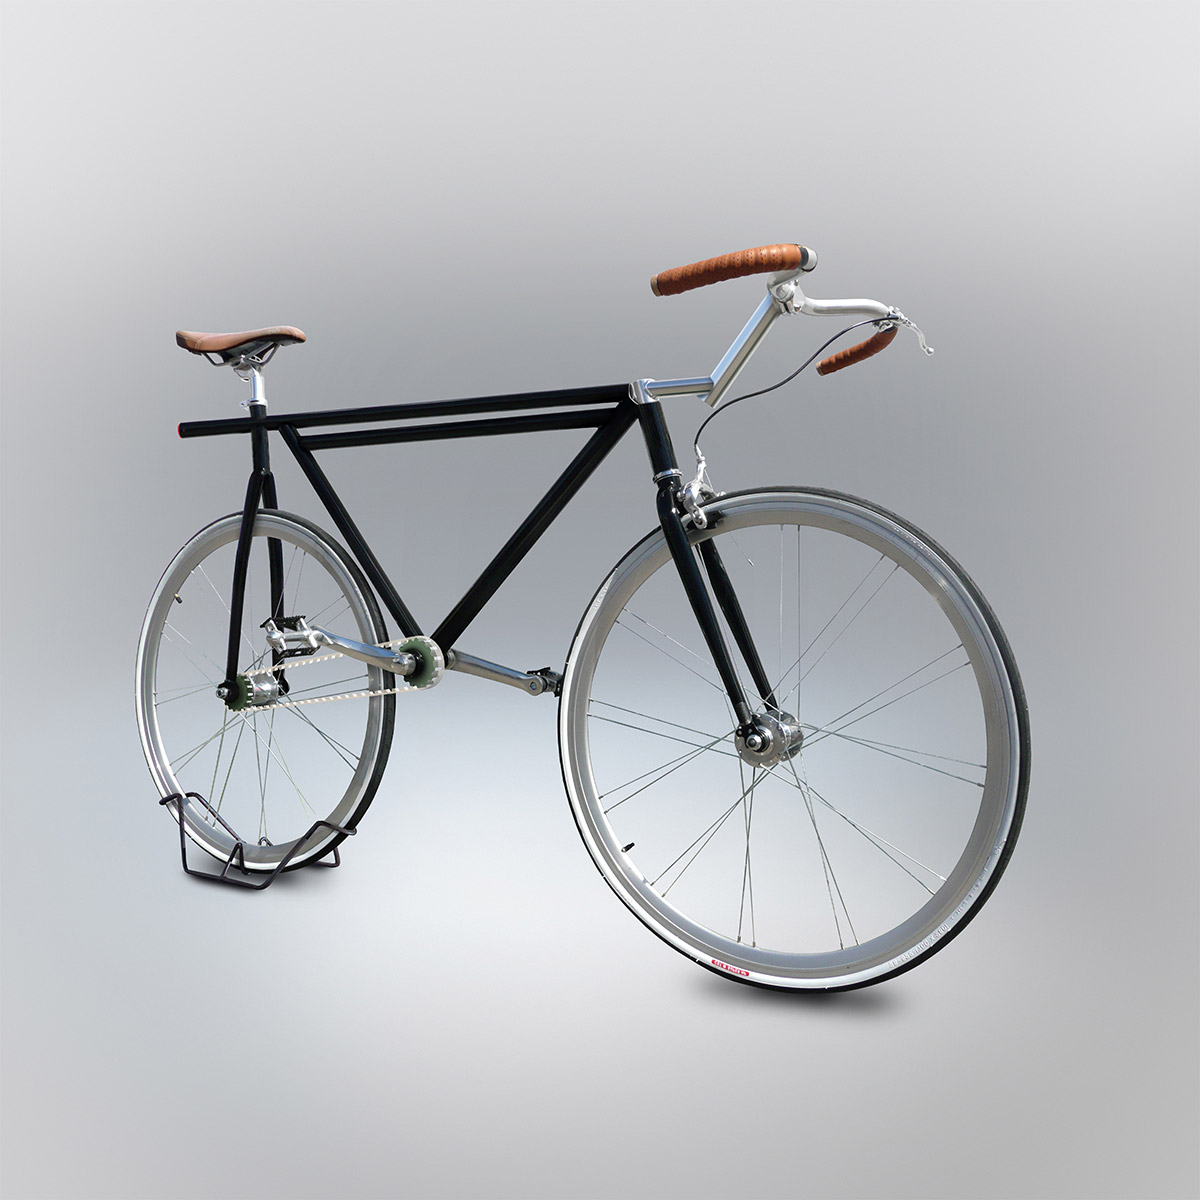 Bicycles Built Based On People's Attempts To Draw Them